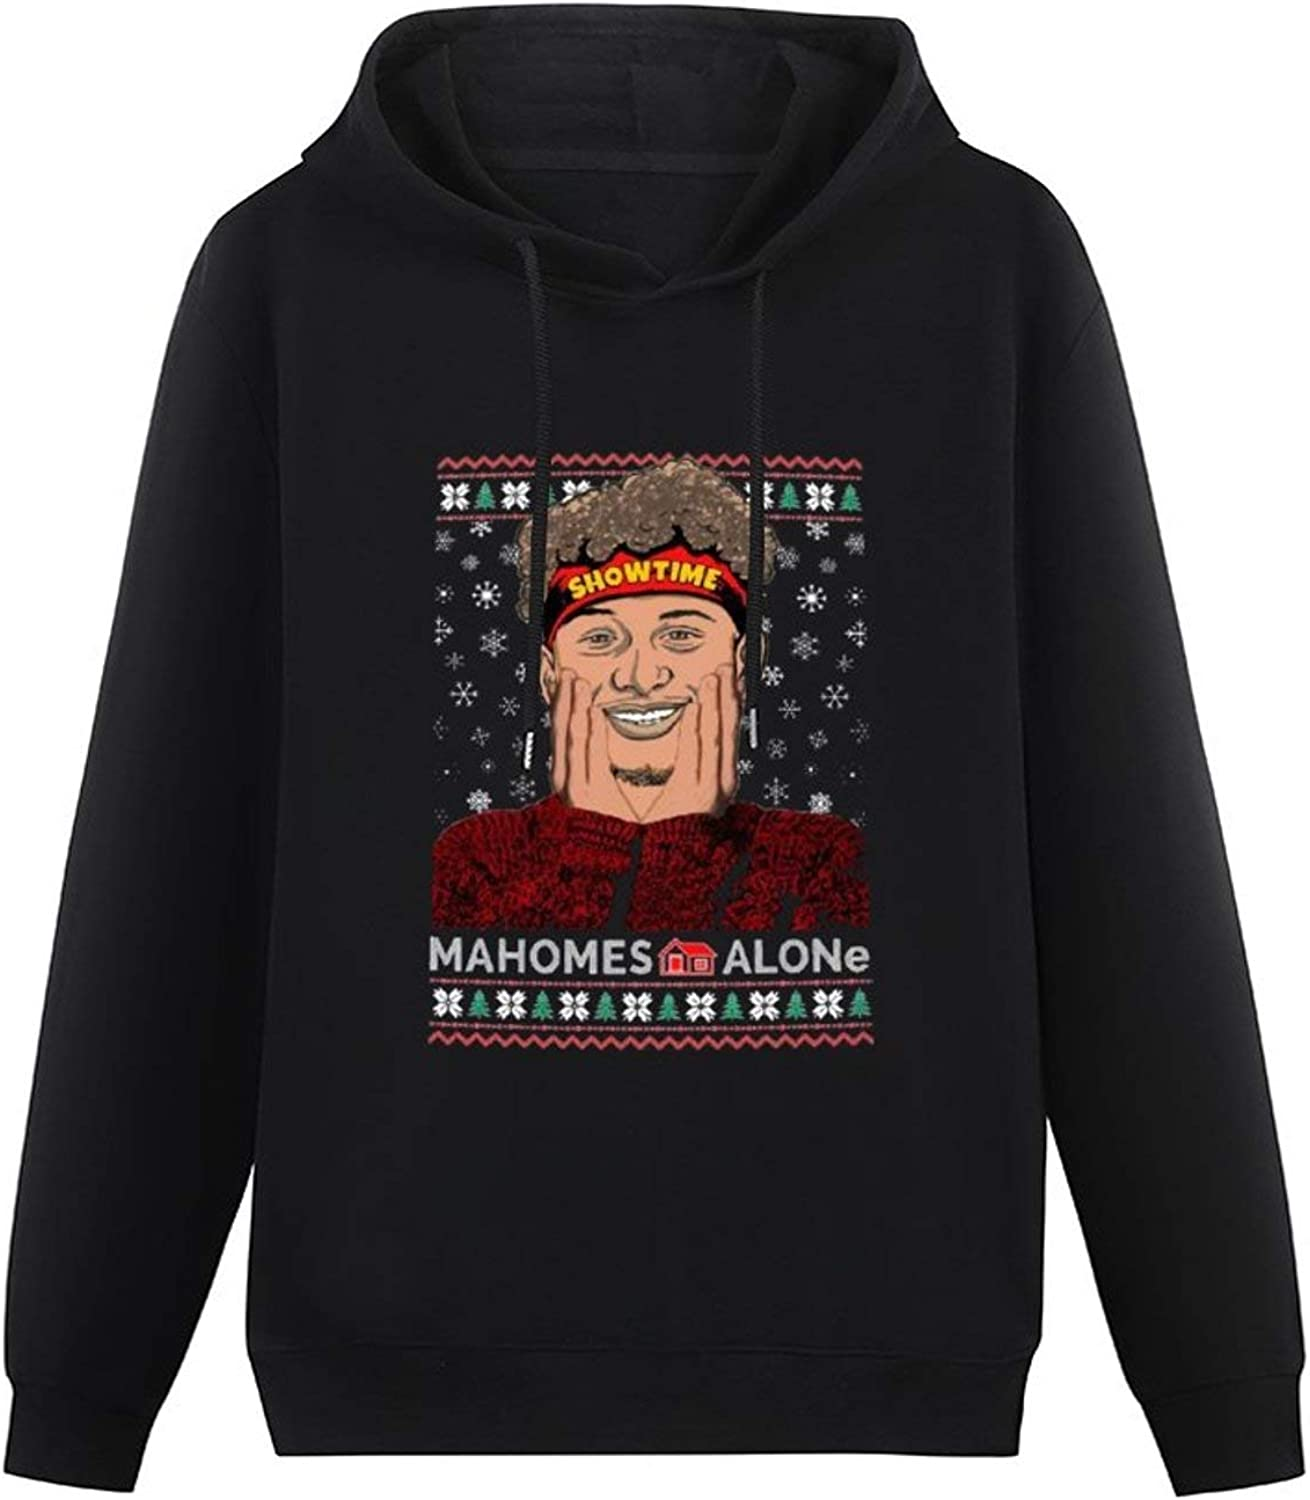 Patrick Ma-Homes Showtime Mahomes Alone Ugly Christmas Autumn and Winter Cotton Comfortable Hooded Sweater